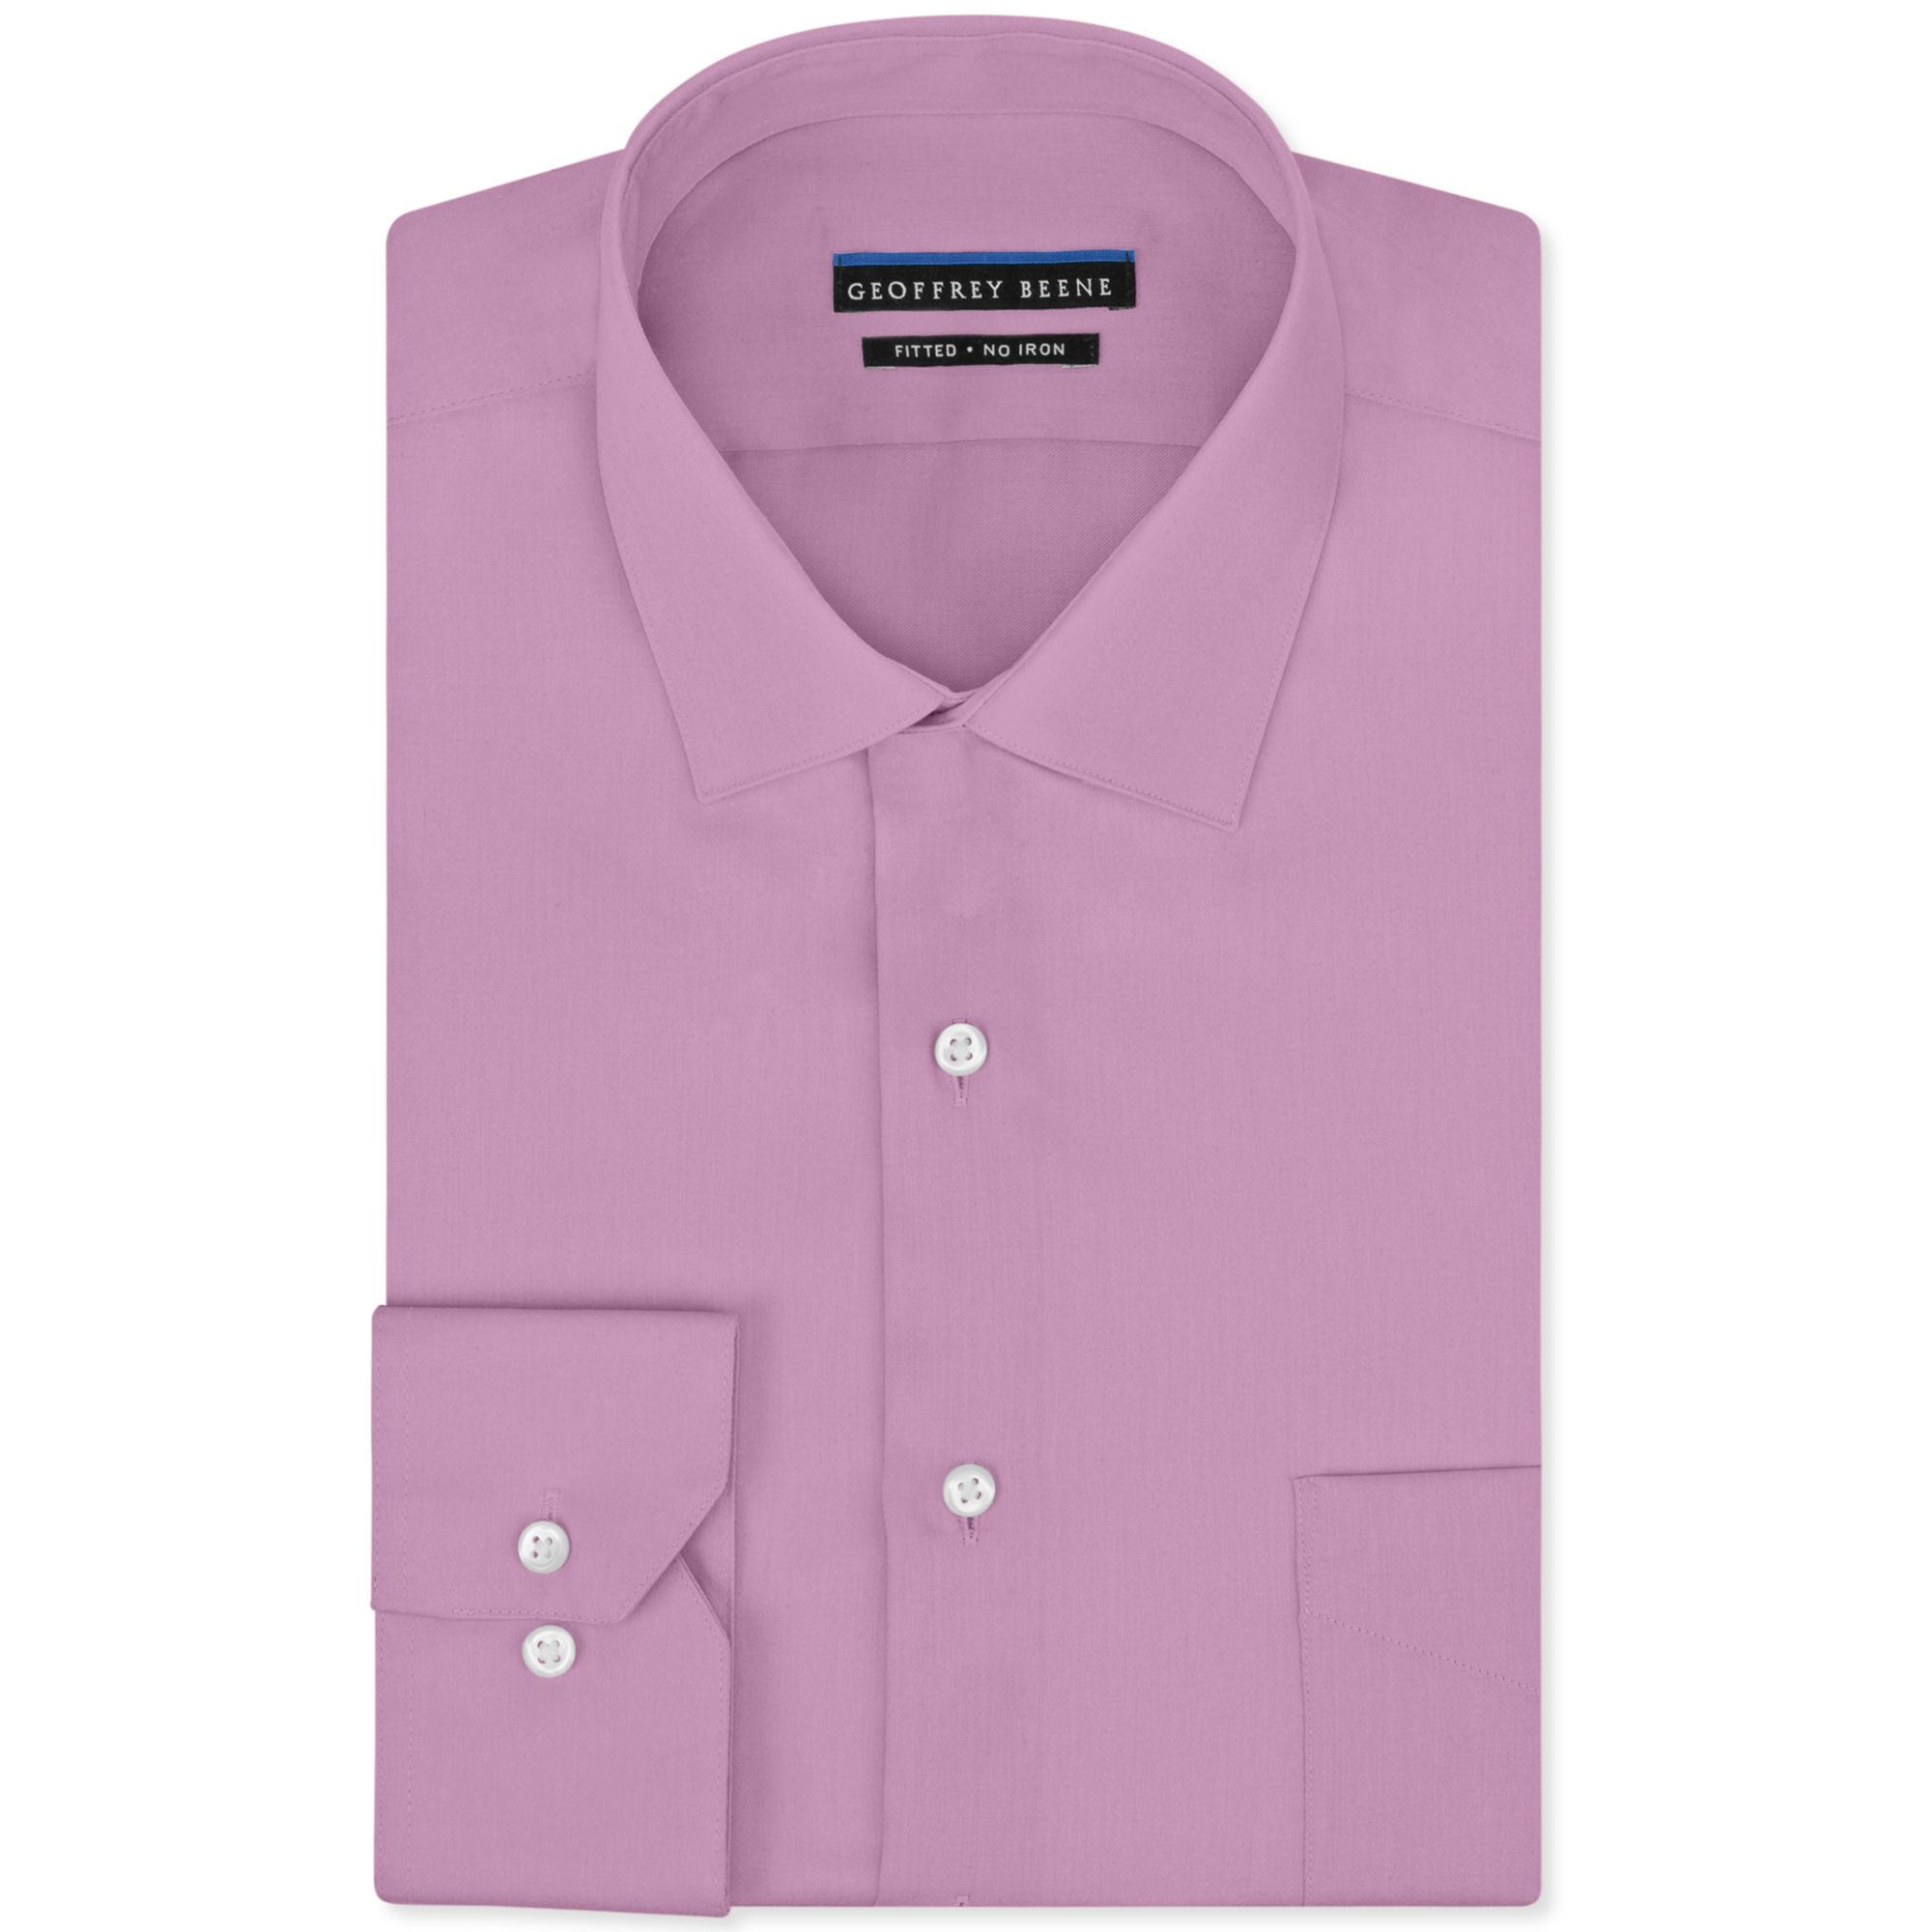 Geoffrey beene no iron sateen solid dress shirt in pink for No iron shirts mens